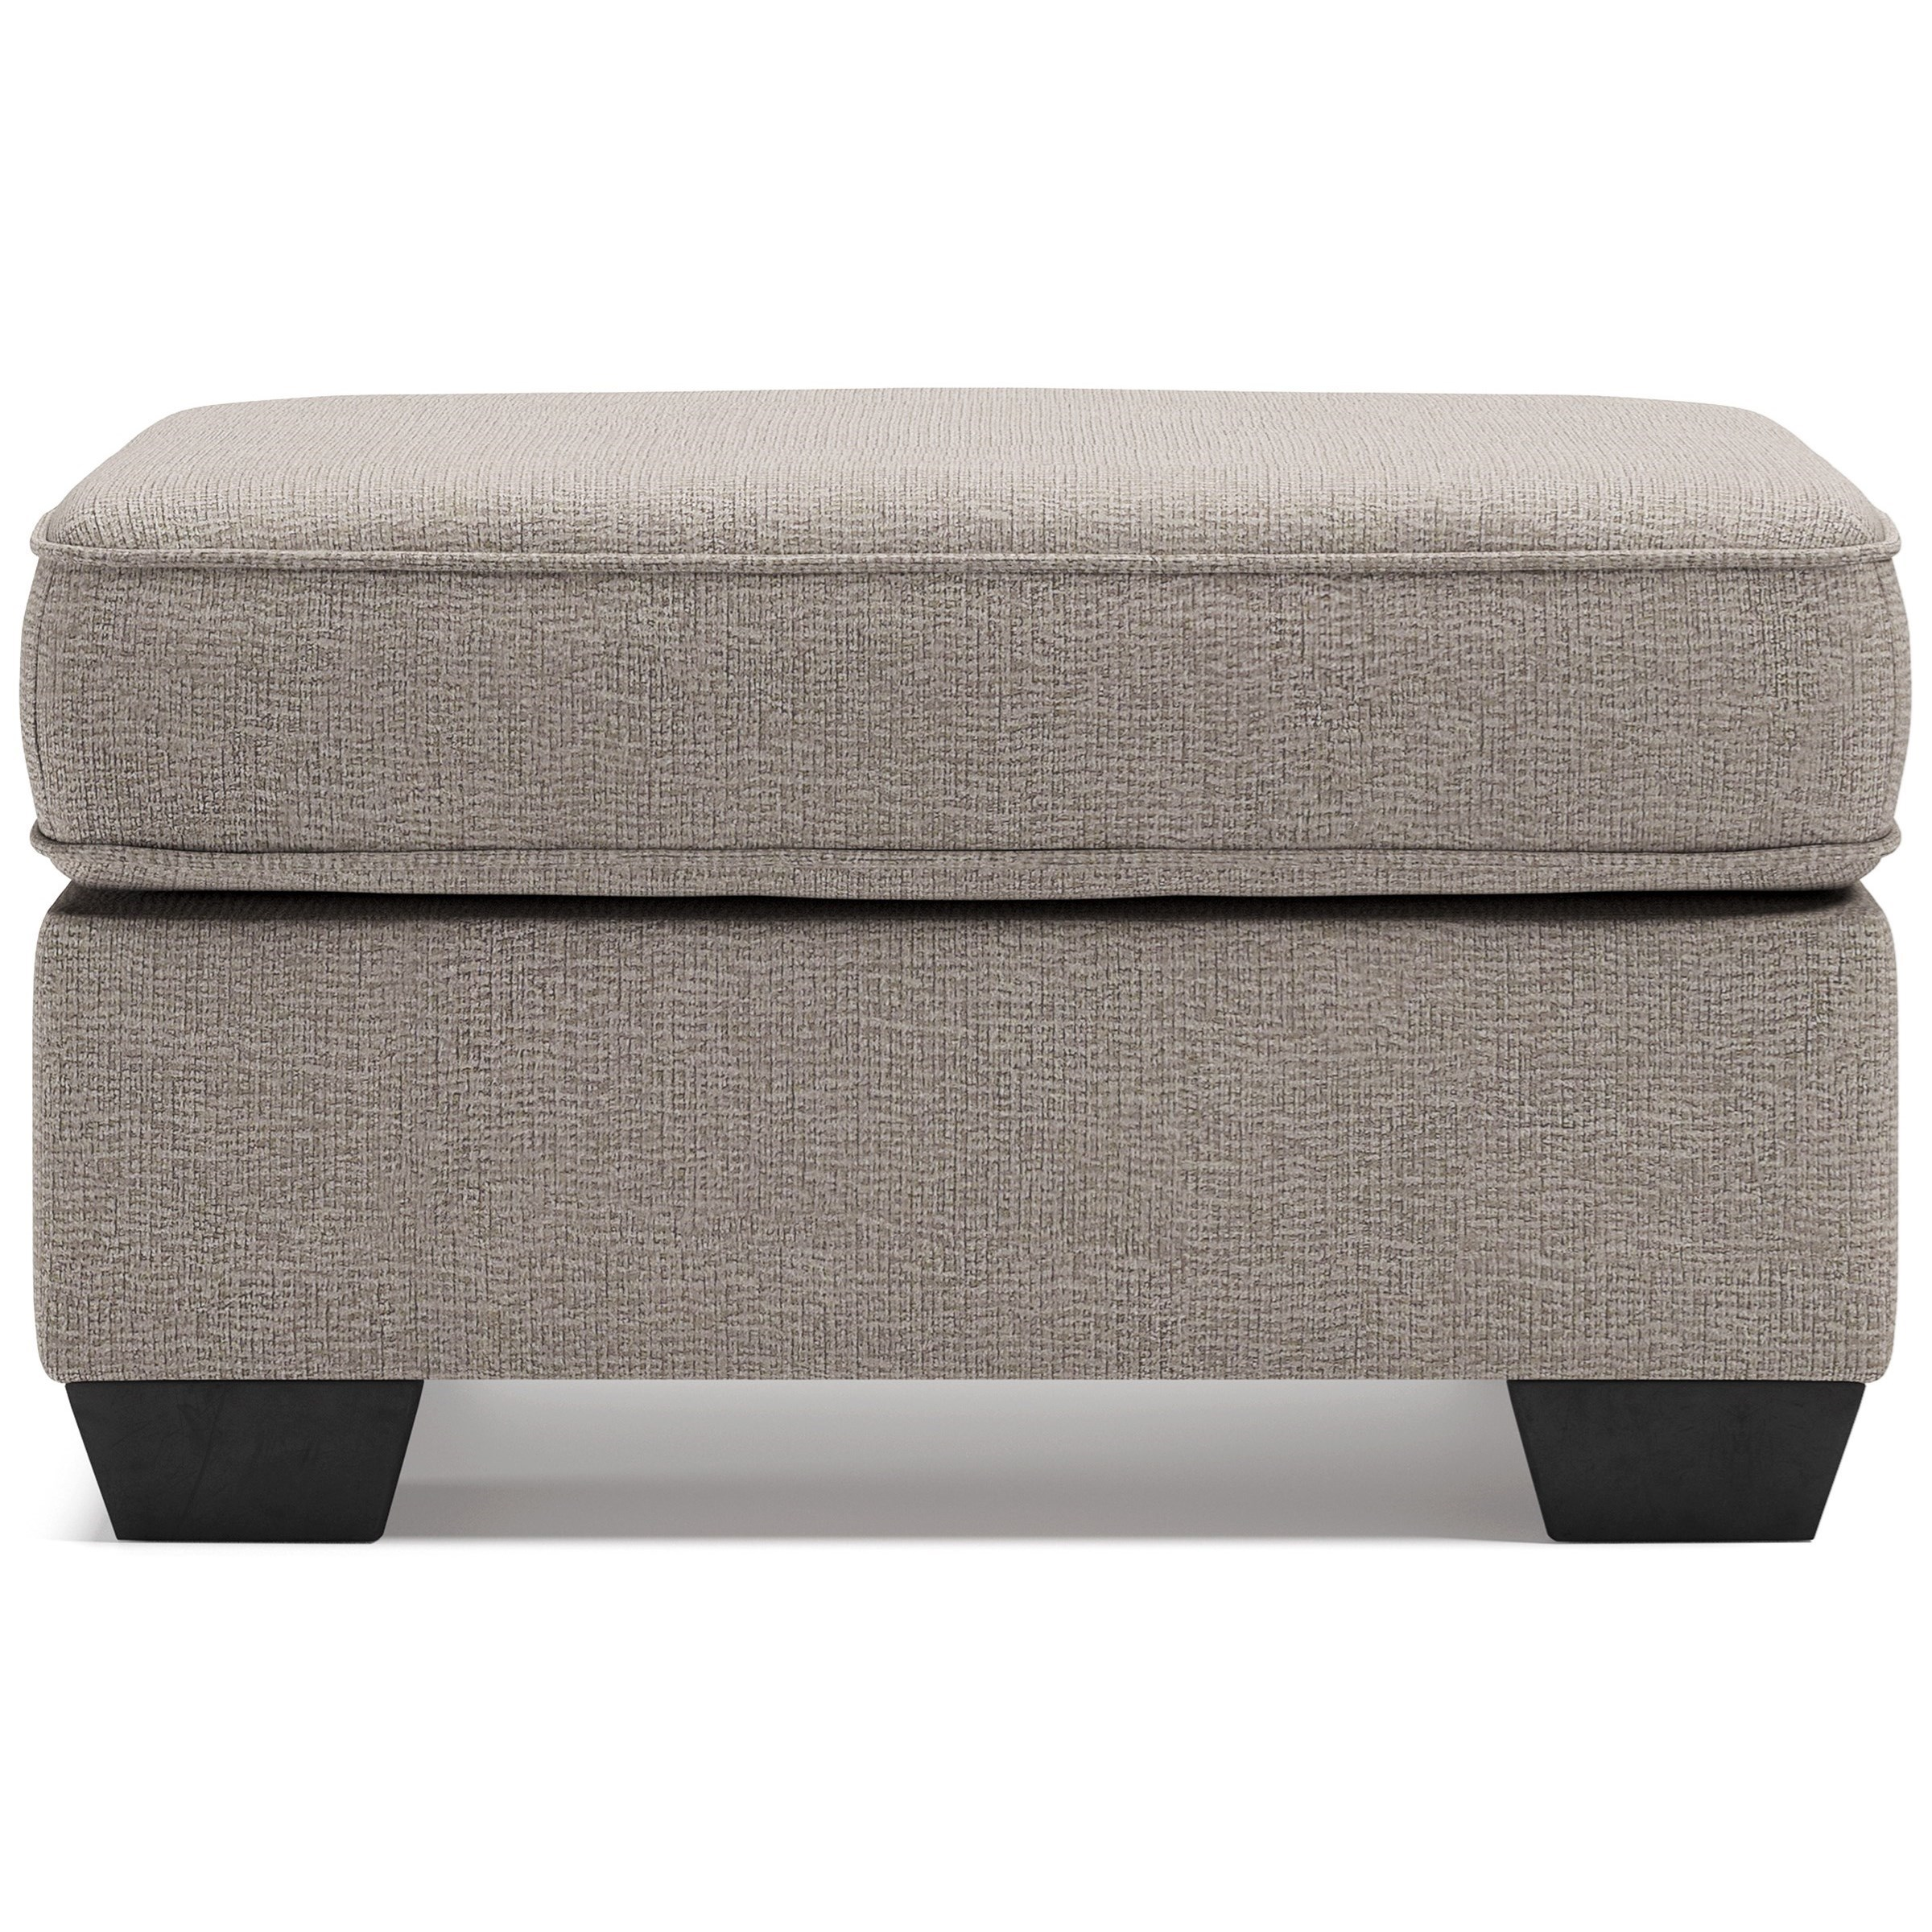 Greaves Ottoman by Signature Design by Ashley at Northeast Factory Direct